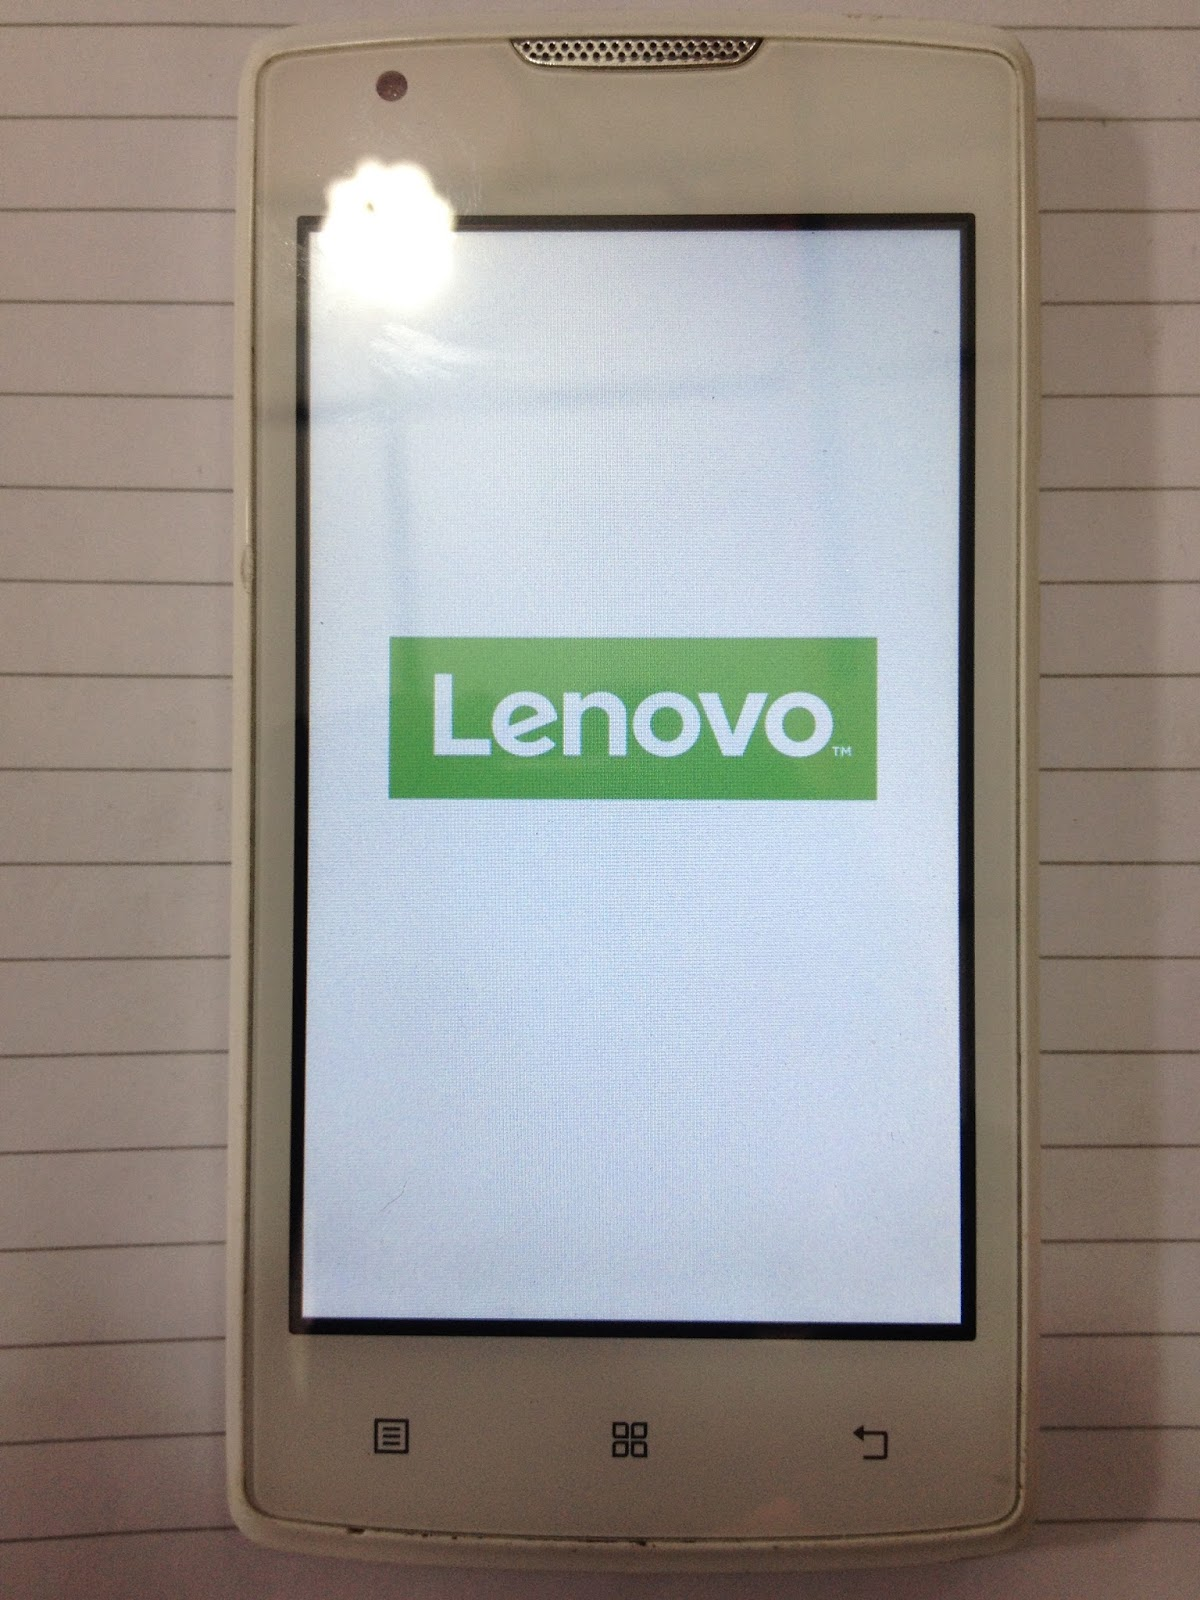 FIRMWARE ROOM ||: LENOVO A1000 S30666 / S575 FIRMWARE FLASH